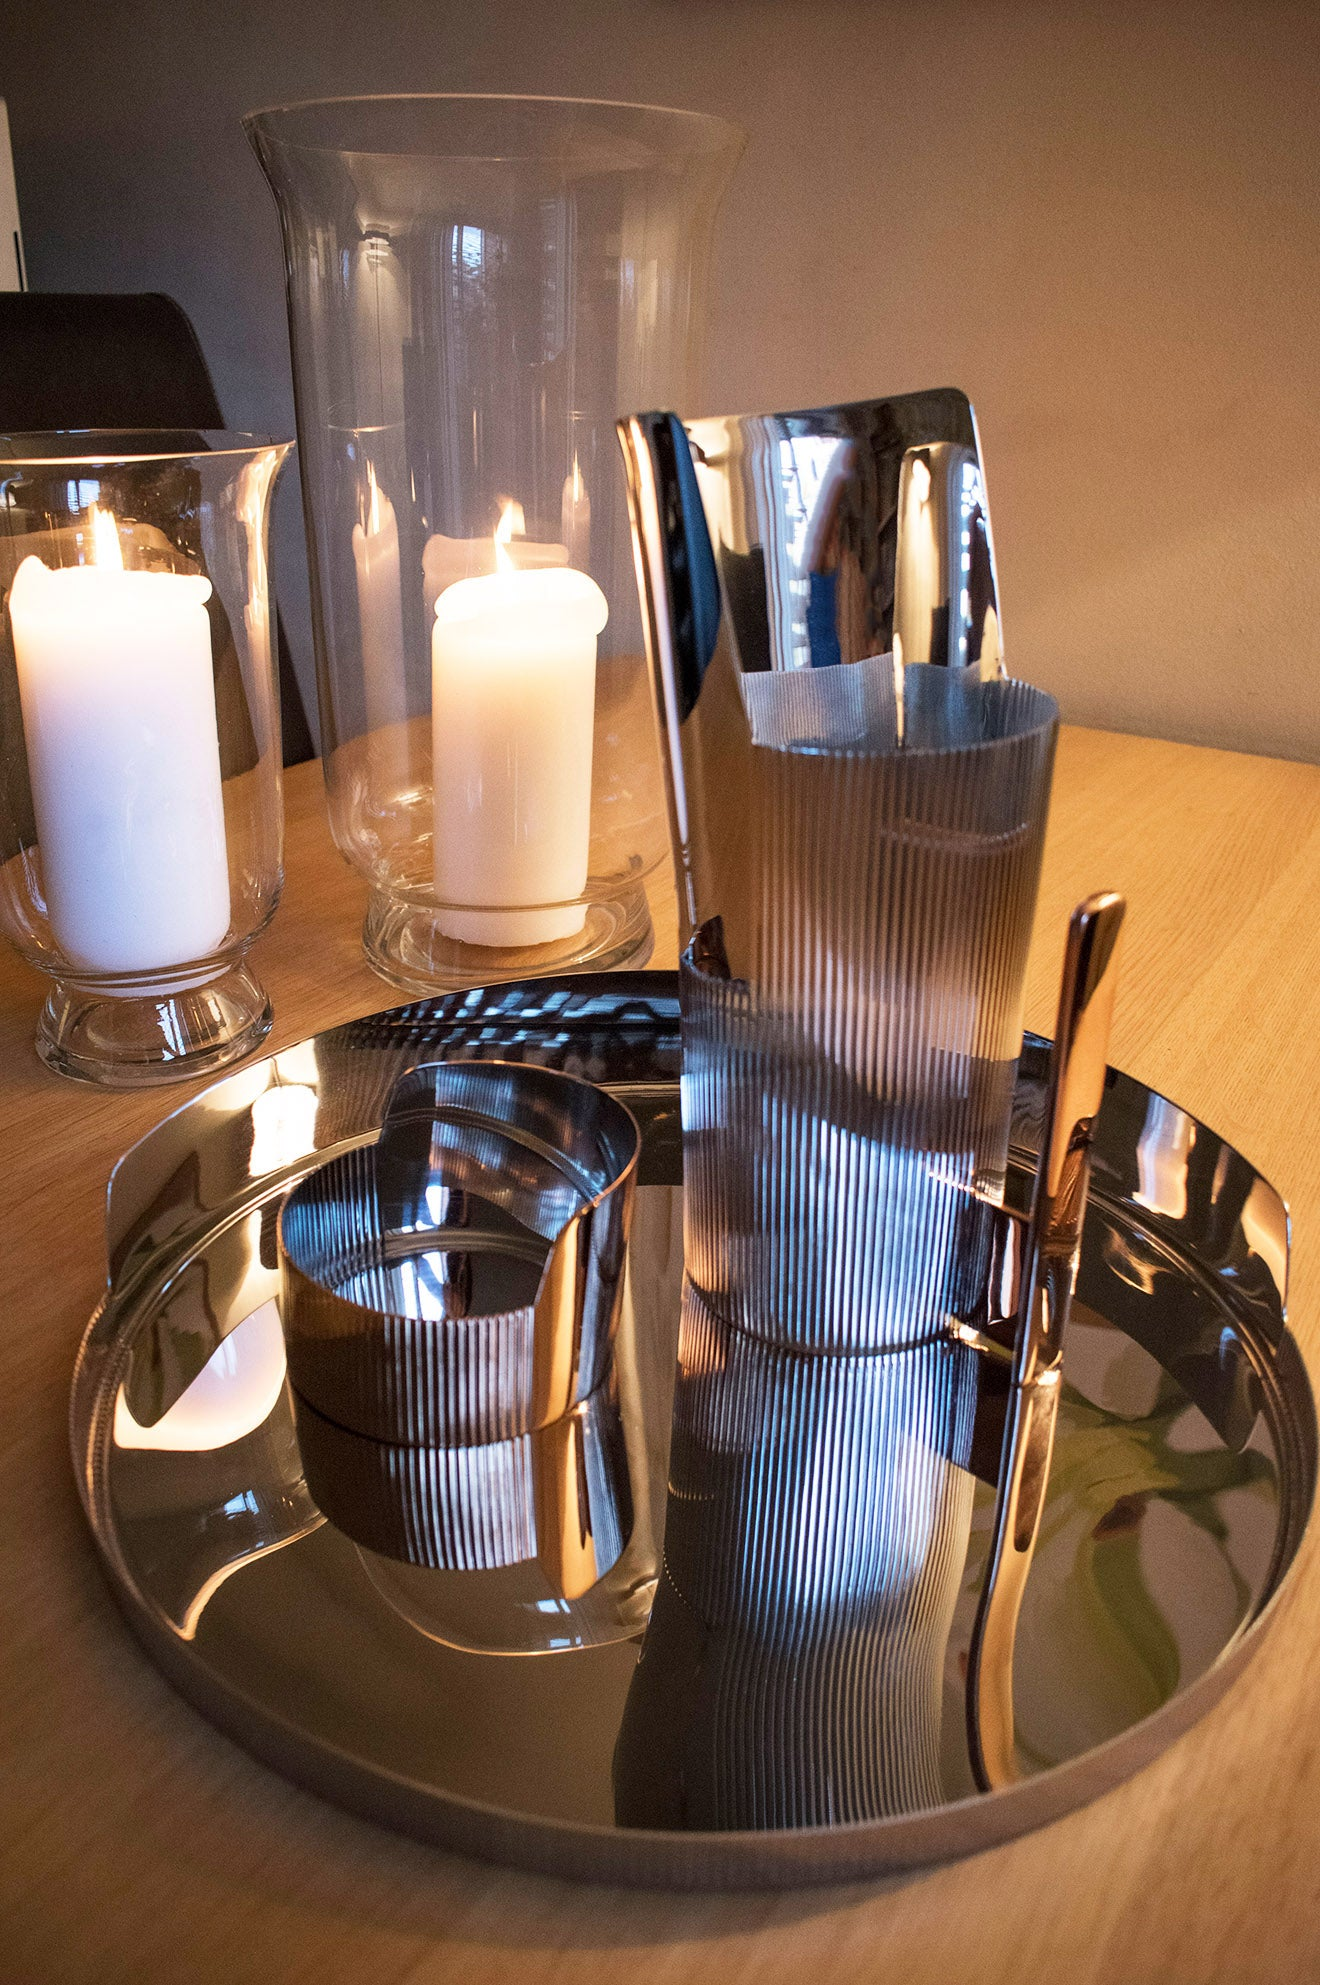 Georg Jensen Urkiola Collection designed by Patricia Urquiola